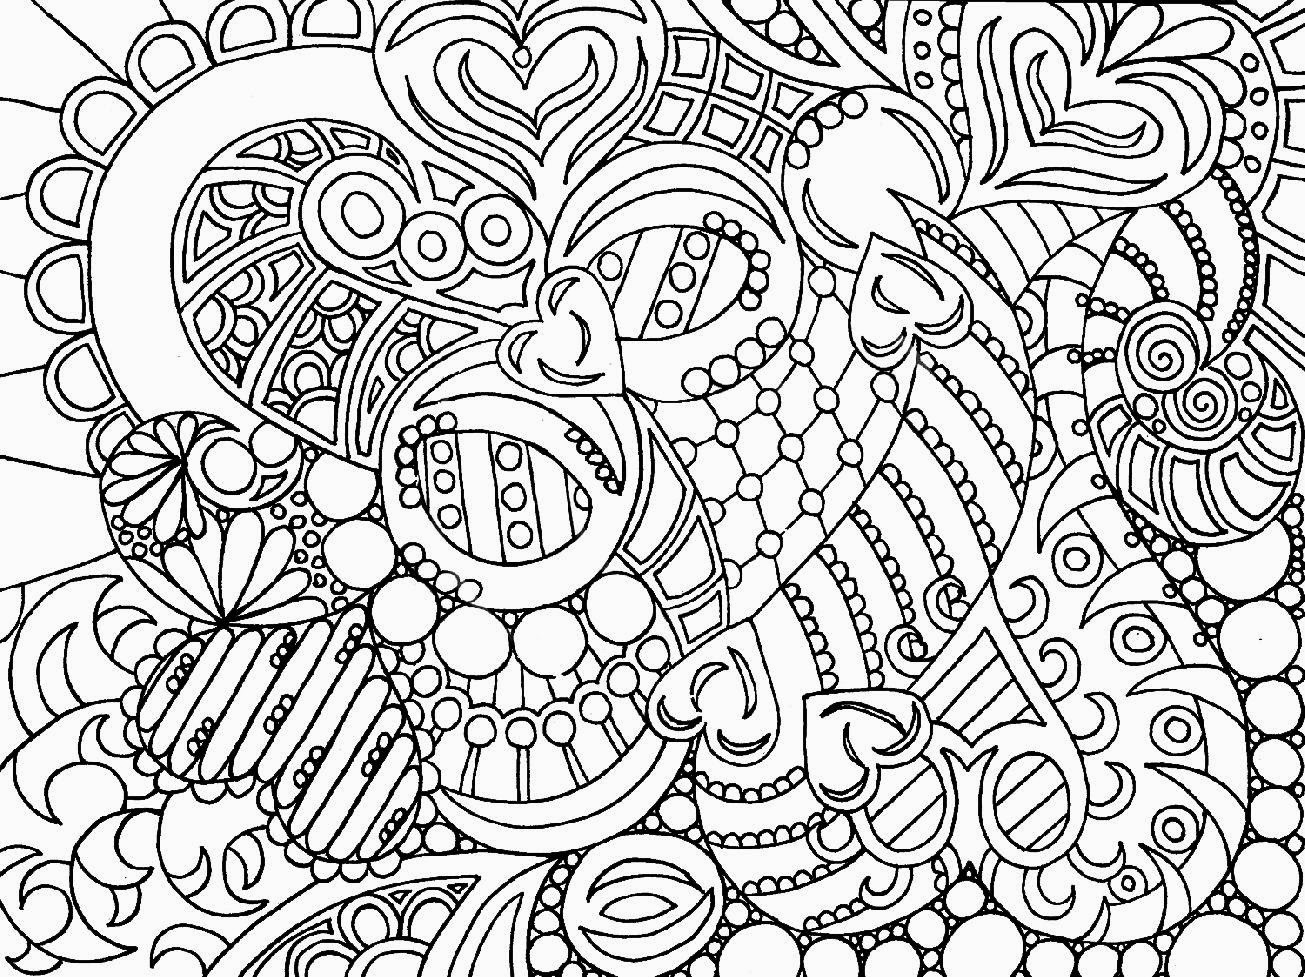 Free Printable Adult Coloring Pages together with large print coloring ...